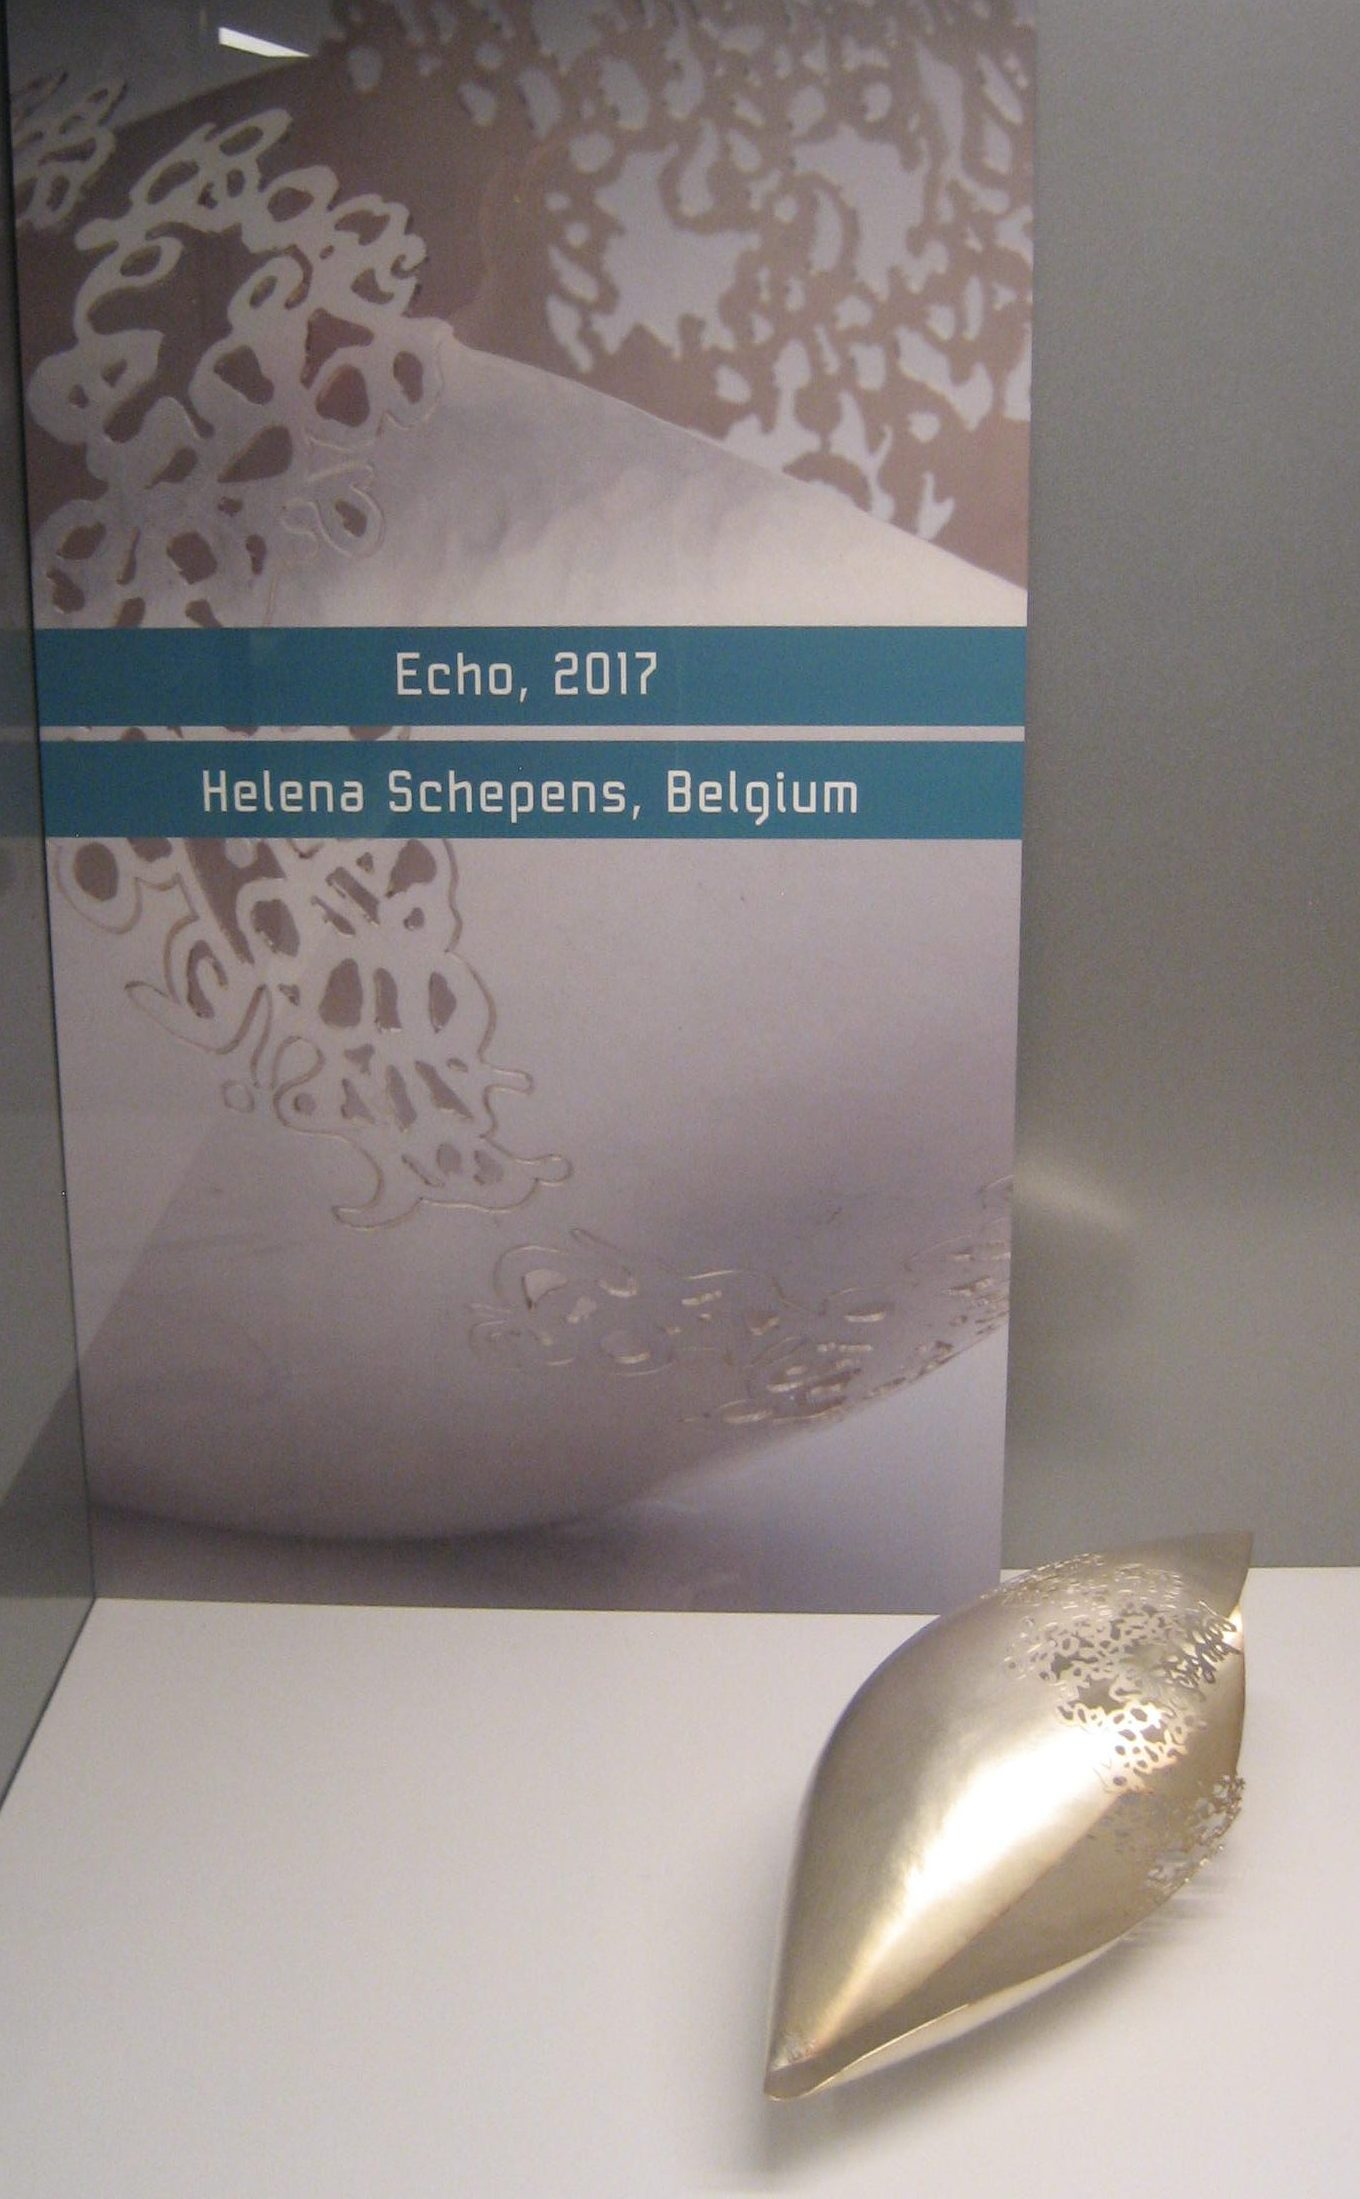 Helena Schepens, Echo, 2017. Foto Esther Doornbusch, 29 maart 2019, CC BY 4.0